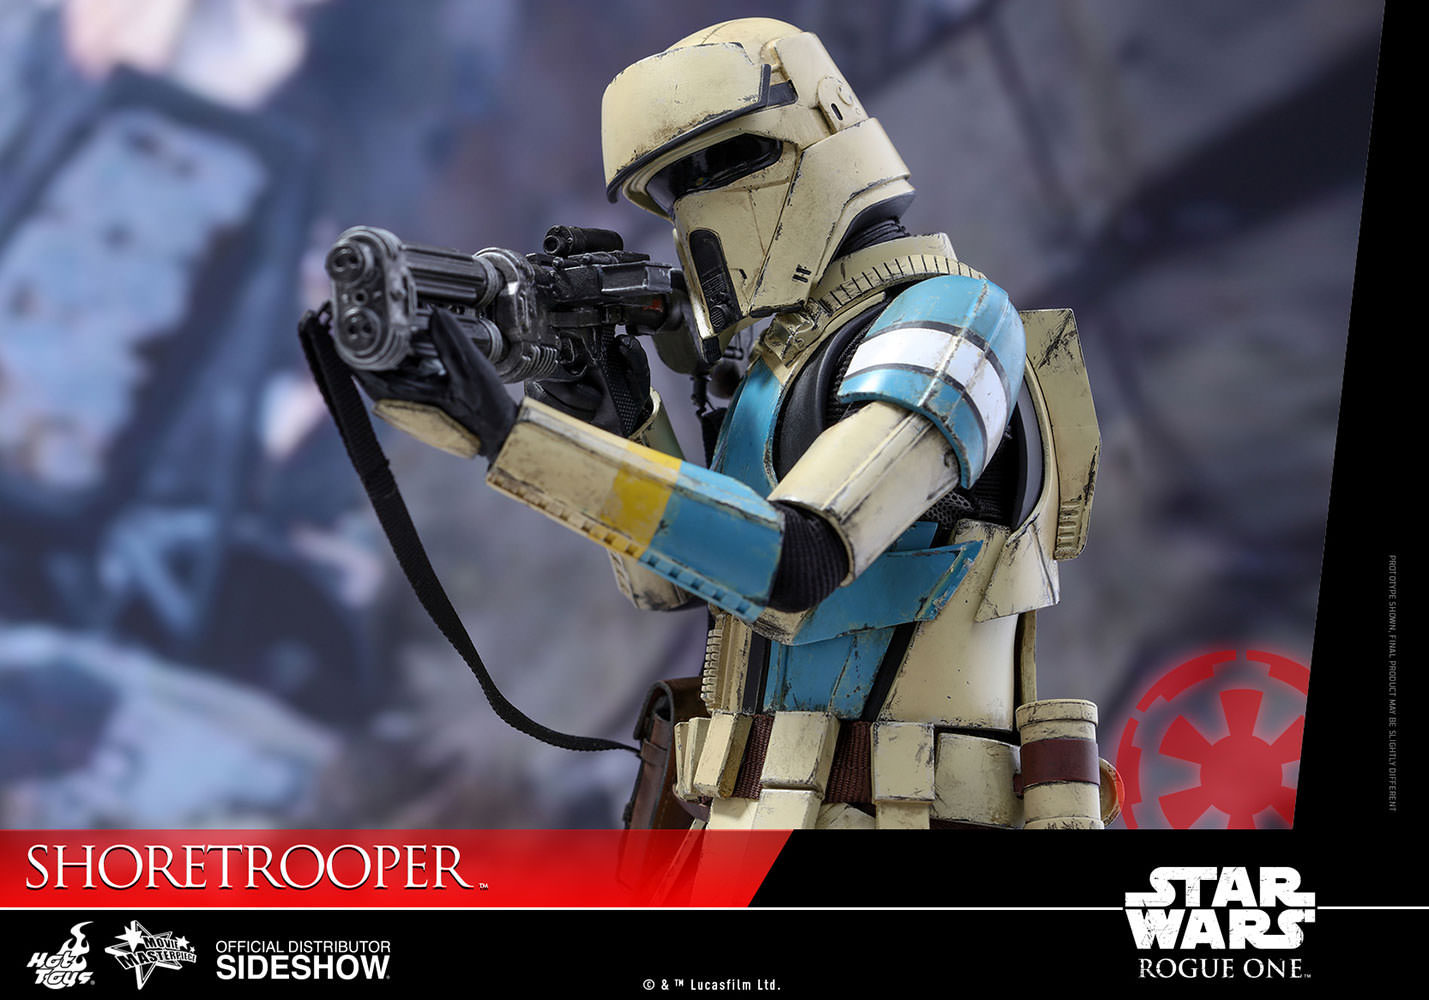 szmk_sideshow_star_wars_shoretrooper_7.jpg